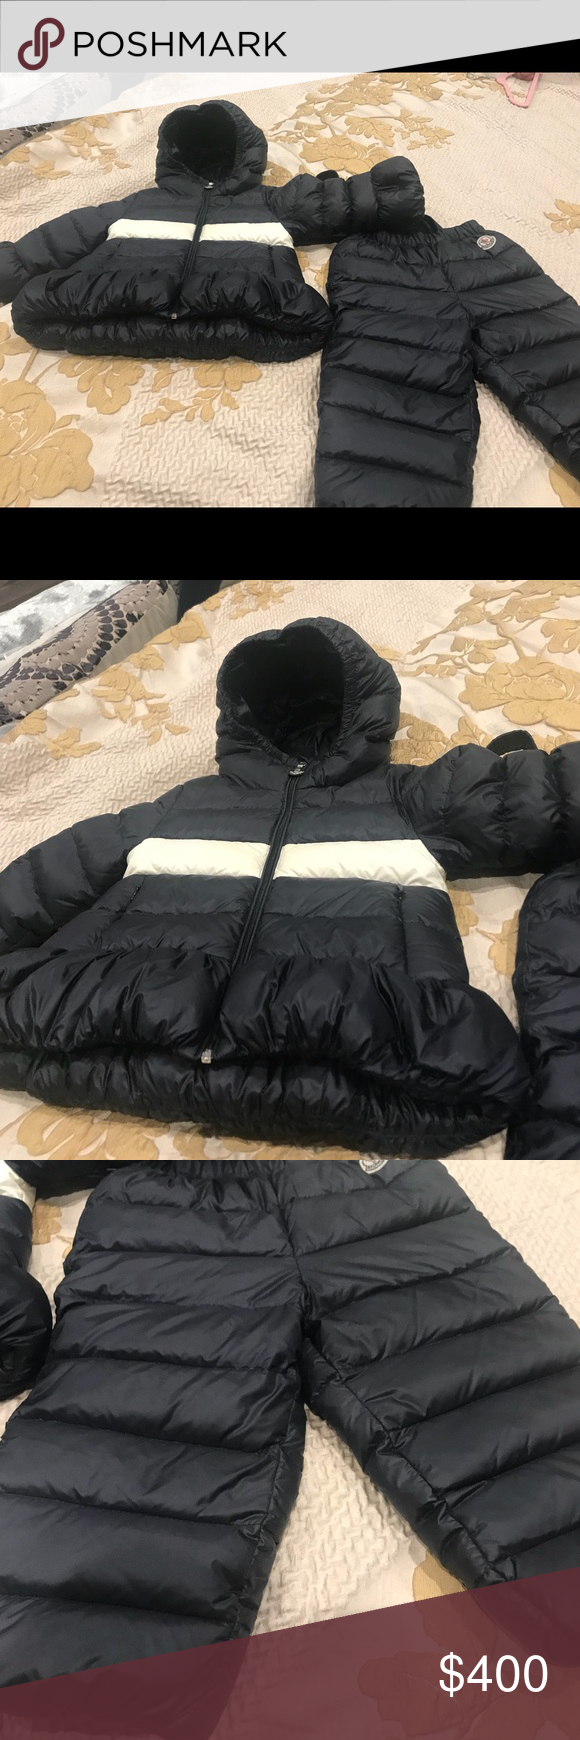 50fc8d1a0 Moncler girls snow suit jacket and pants Blue and white moncler ...